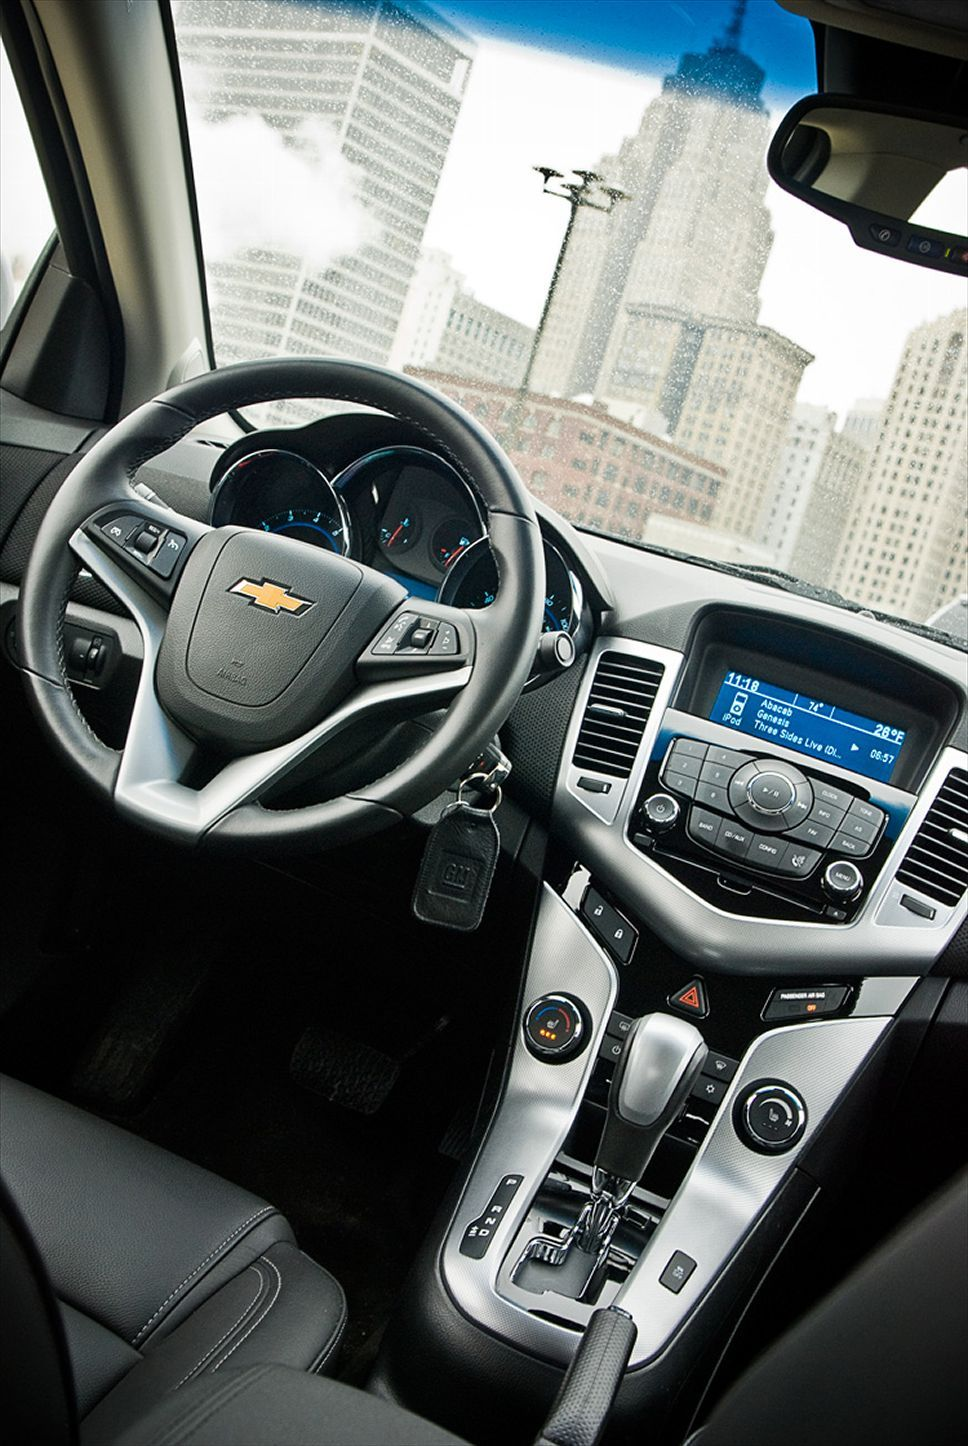 2011 Chevrolet Cruze Ltz Interior I Shot This Pinterest Chevrolet Cruze Chevrolet And Cars